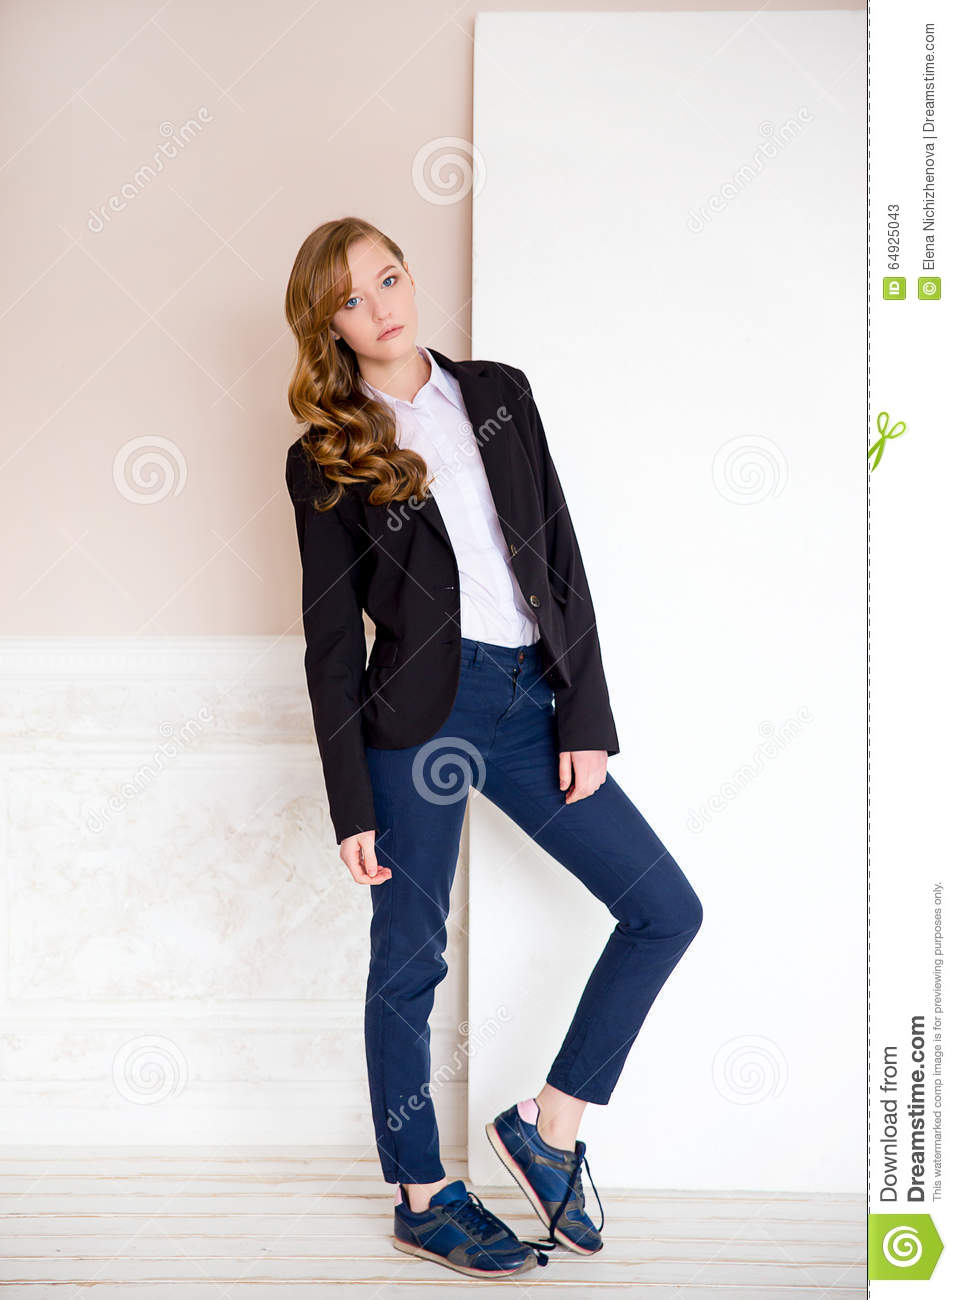 The girl in a jacket on a beige background stock image Black shirt blue jeans